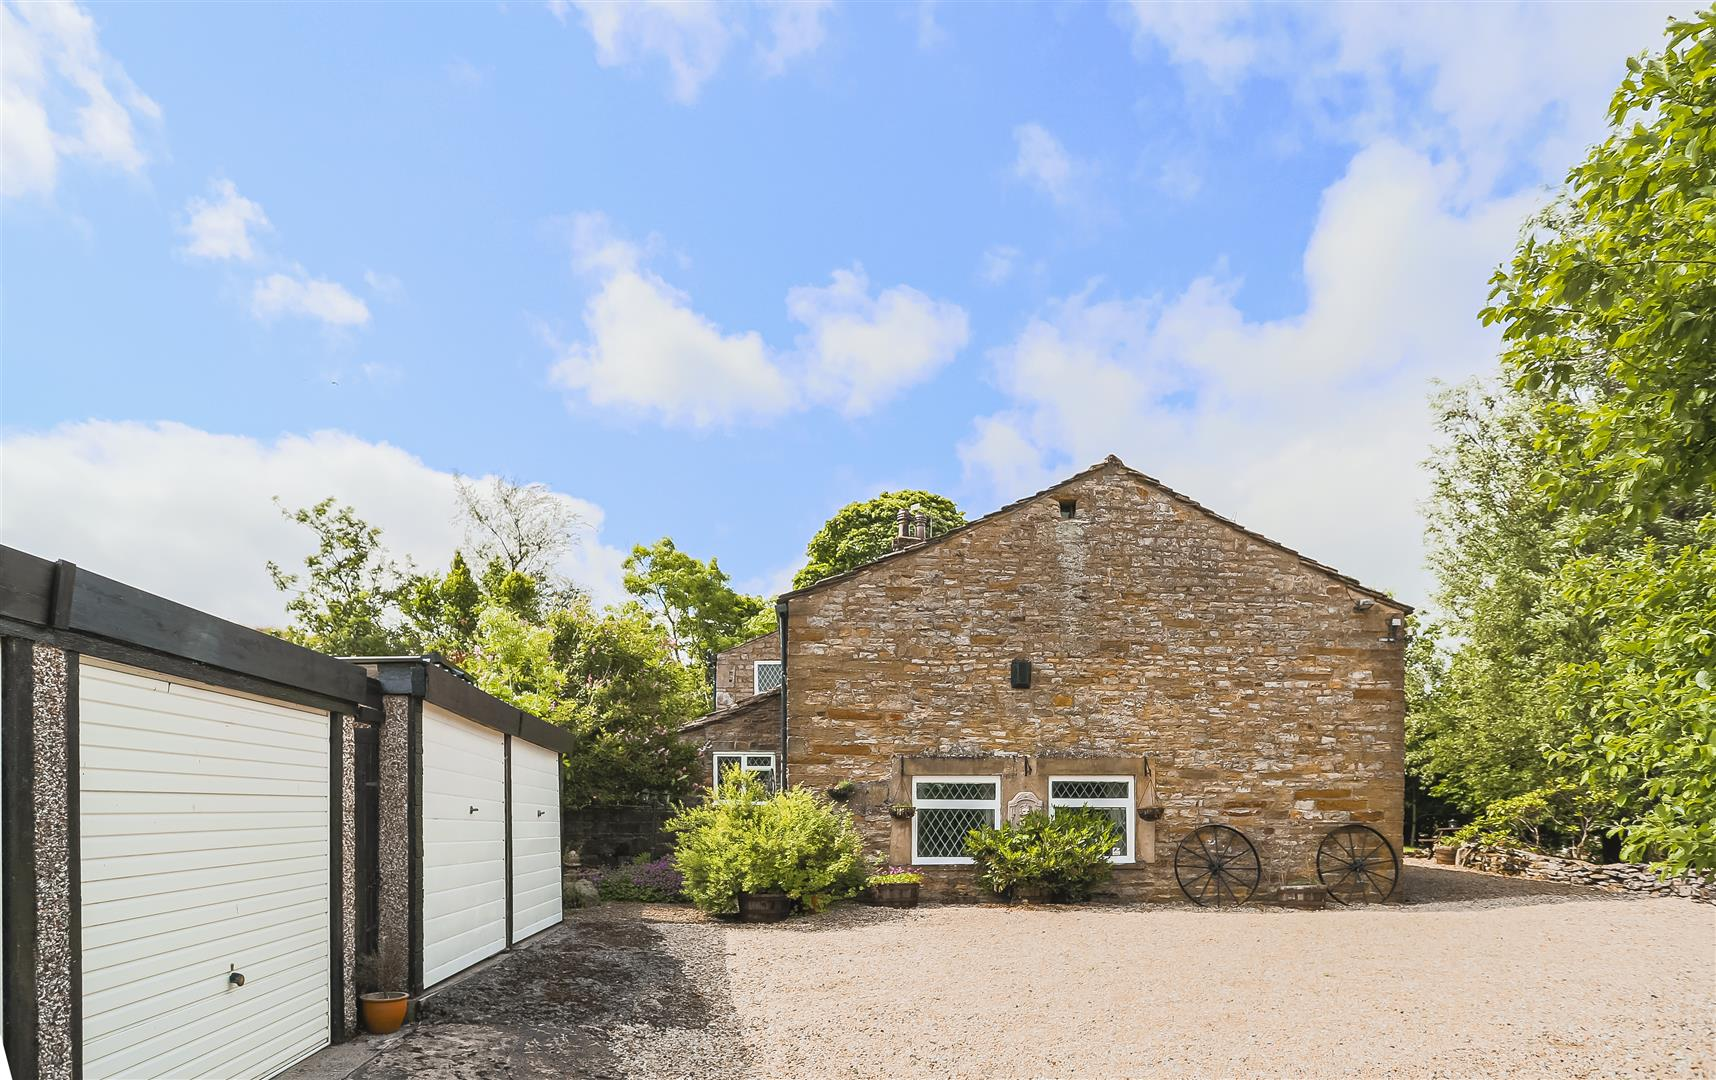 3 Bedroom House For Sale - Image 65